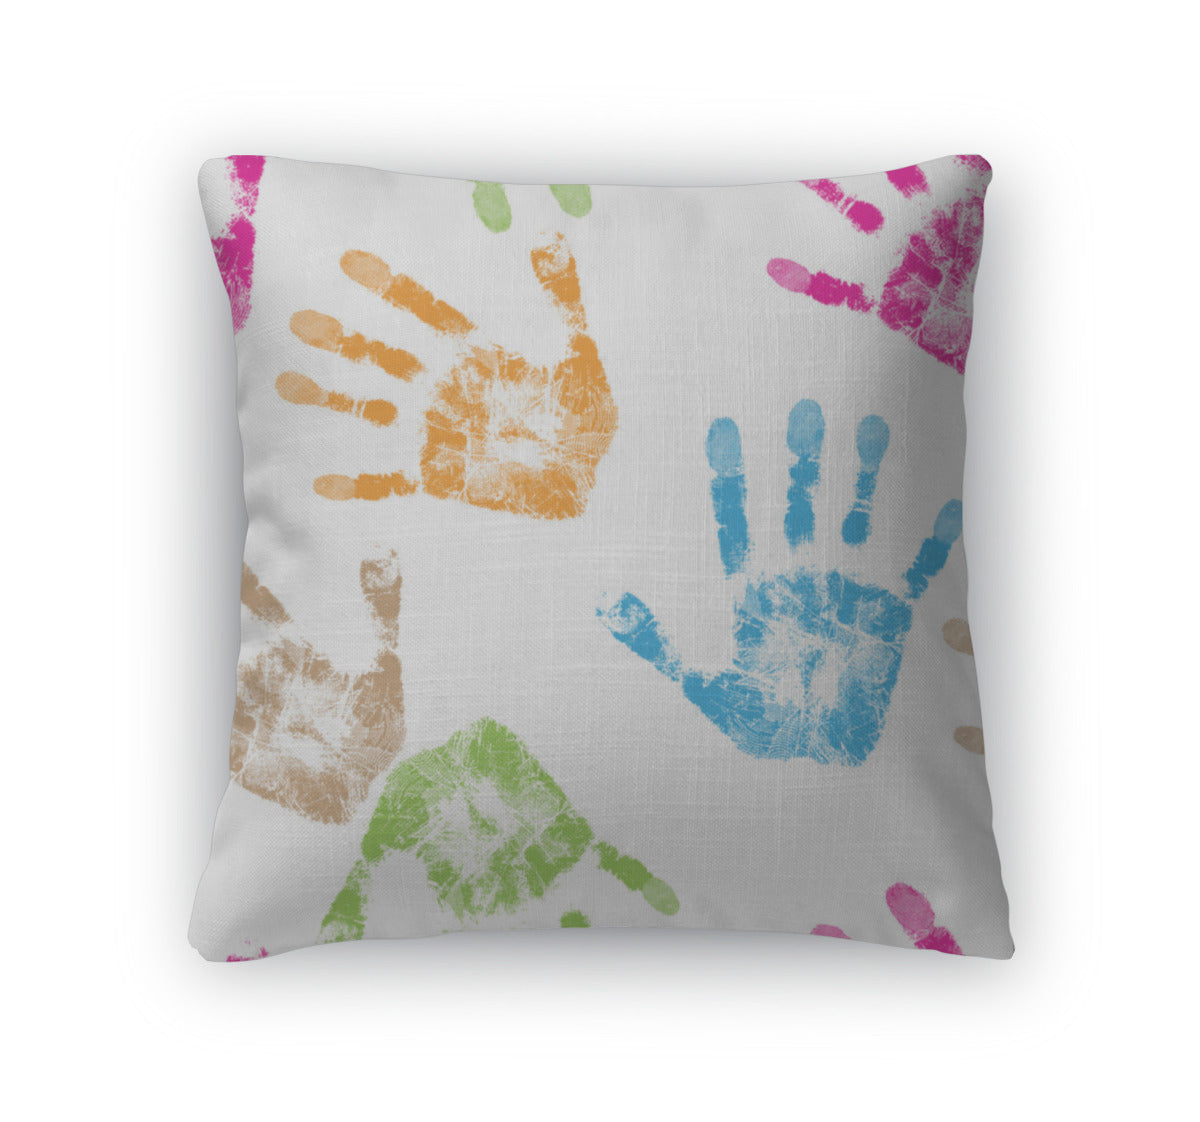 Throw Pillow, Print Of Hand - fashionbests